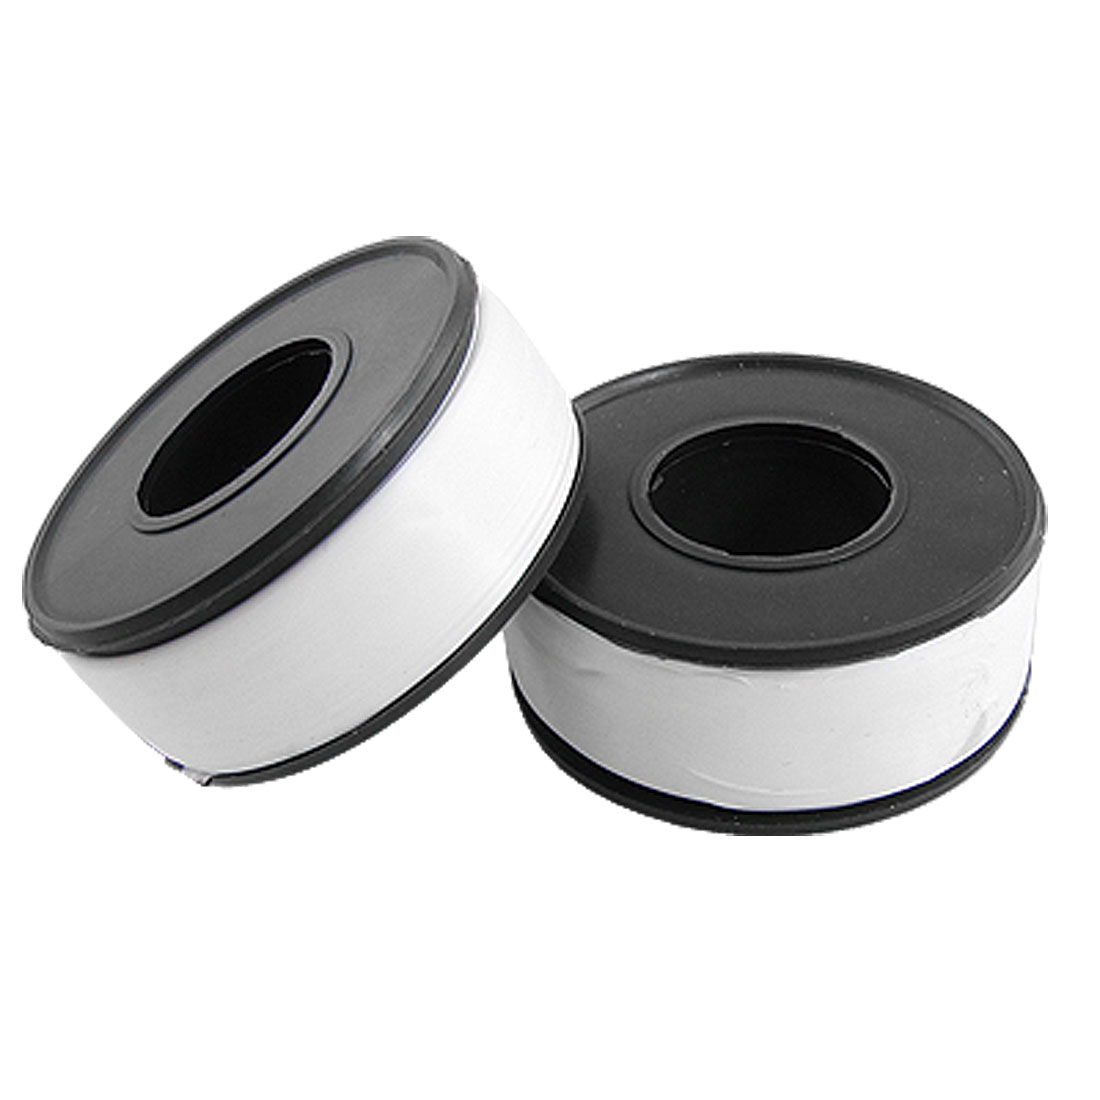 White 1.5cm Width Threaded Joints Sealing PTFE Water Tapes 2 Pcs